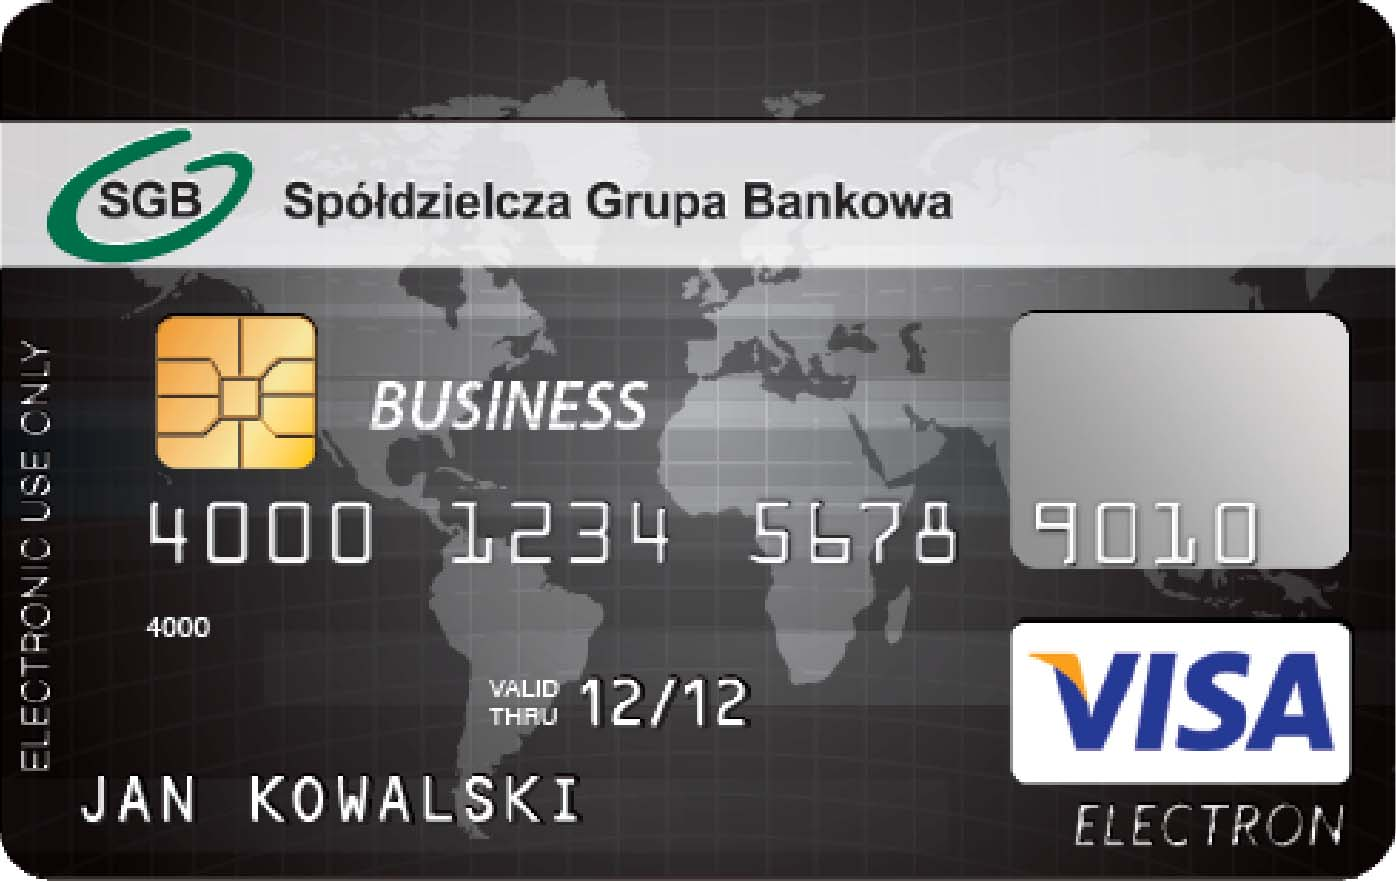 visa business czarna